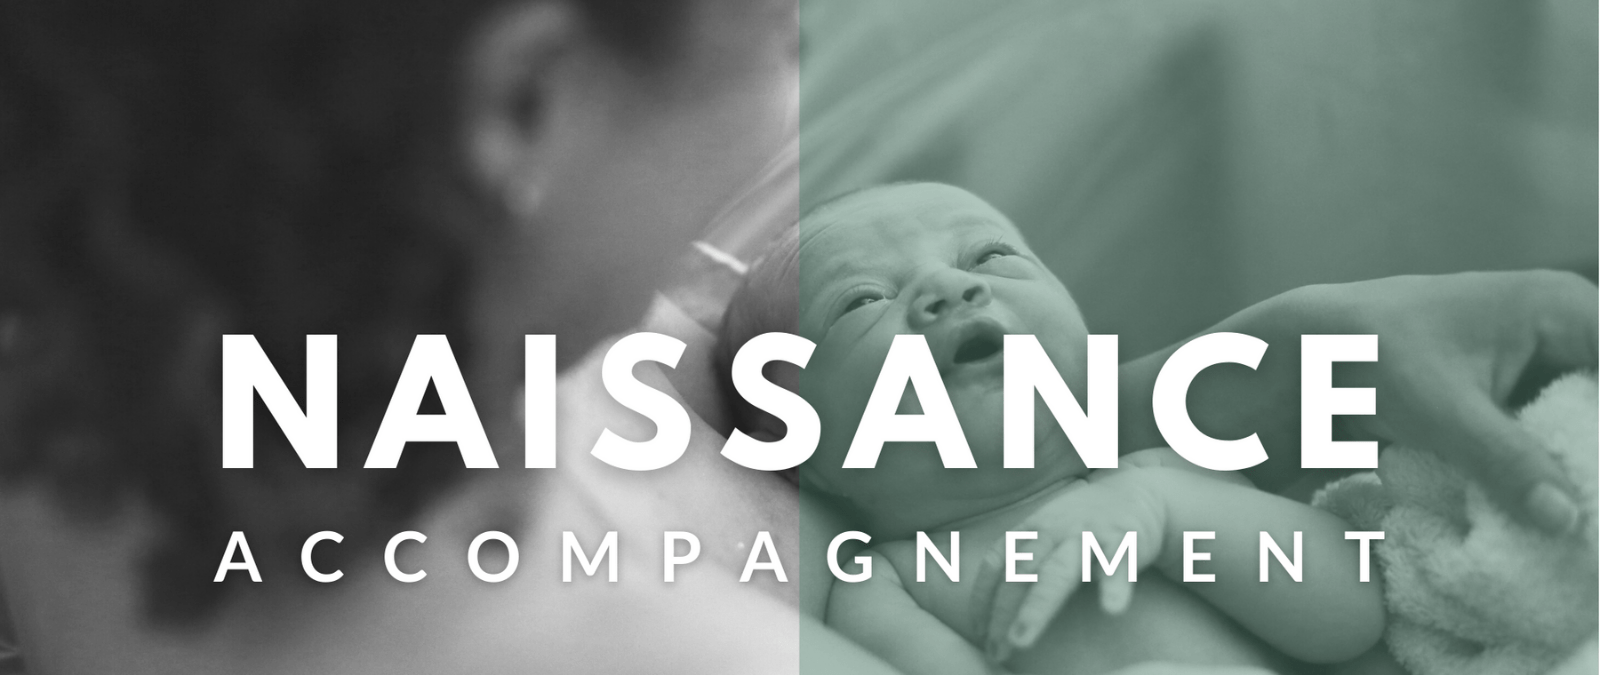 Doula accompagnement Naissance